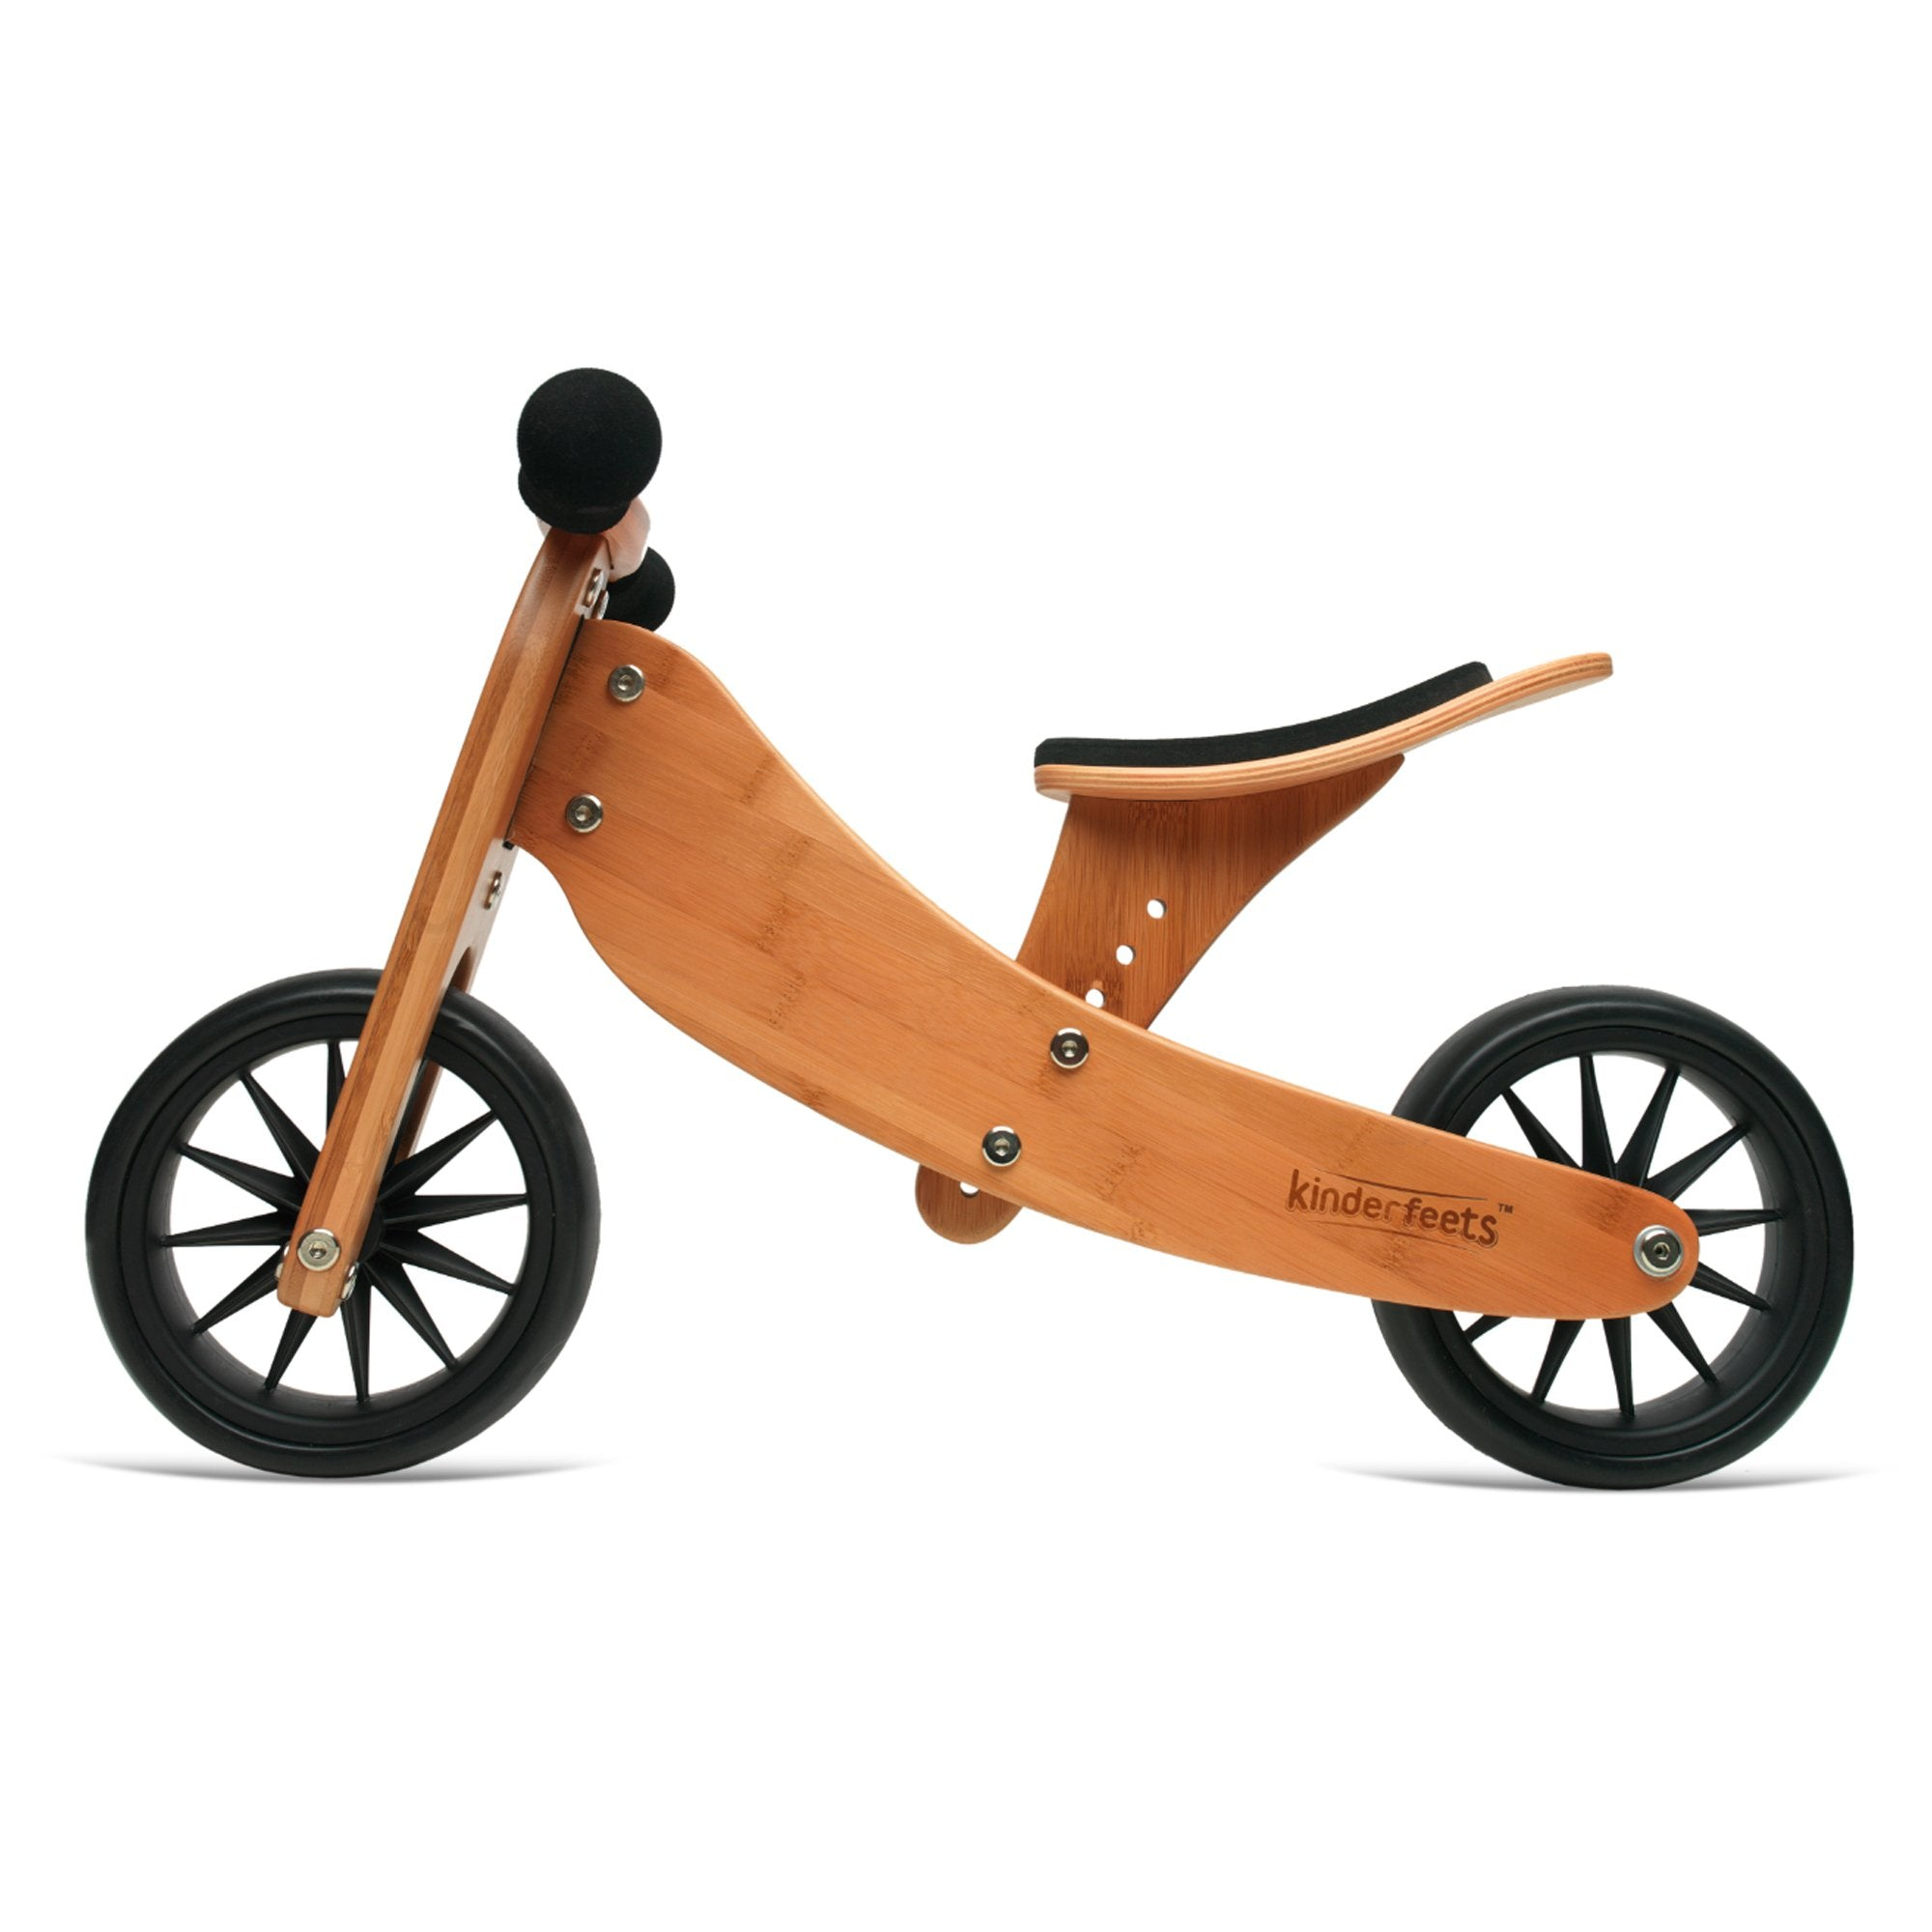 Kinderfeets Tiny Tot Trike Bamboo 2 in 1 Kinderfeets Kids Riding Vehicles at Little Earth Nest Eco Shop